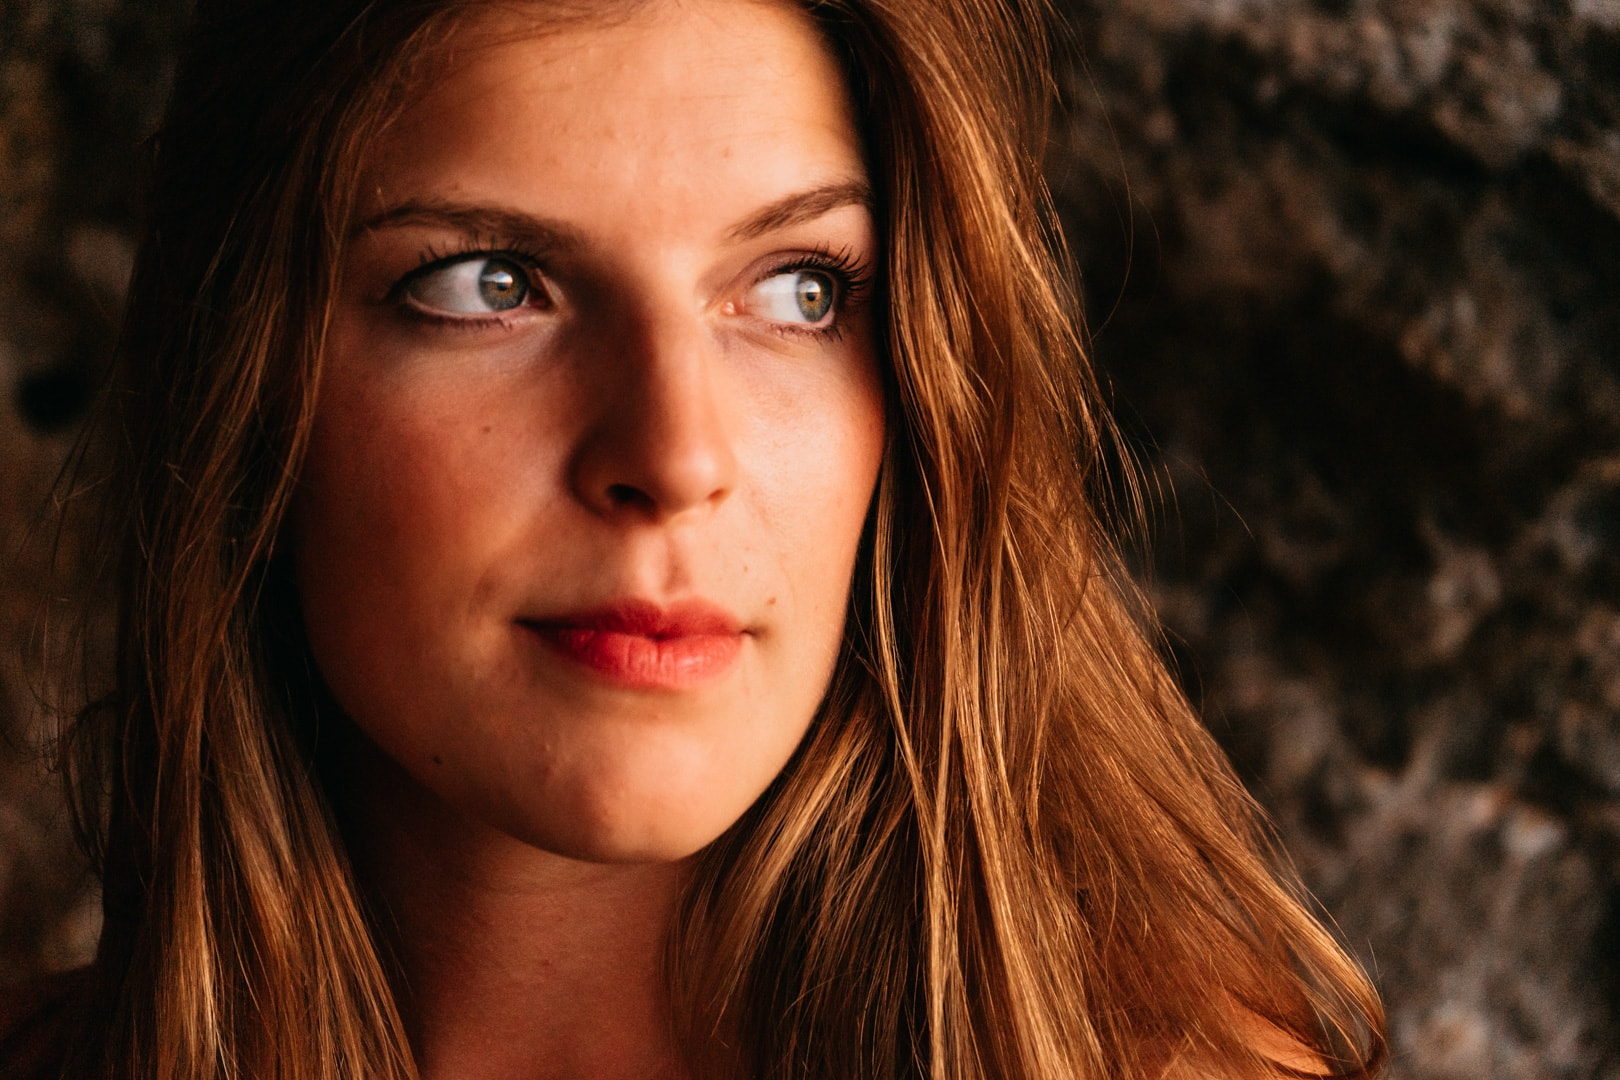 Beautiful portrait photo session in Algarve. Close up of a blonde girl in a cave looking to the right.